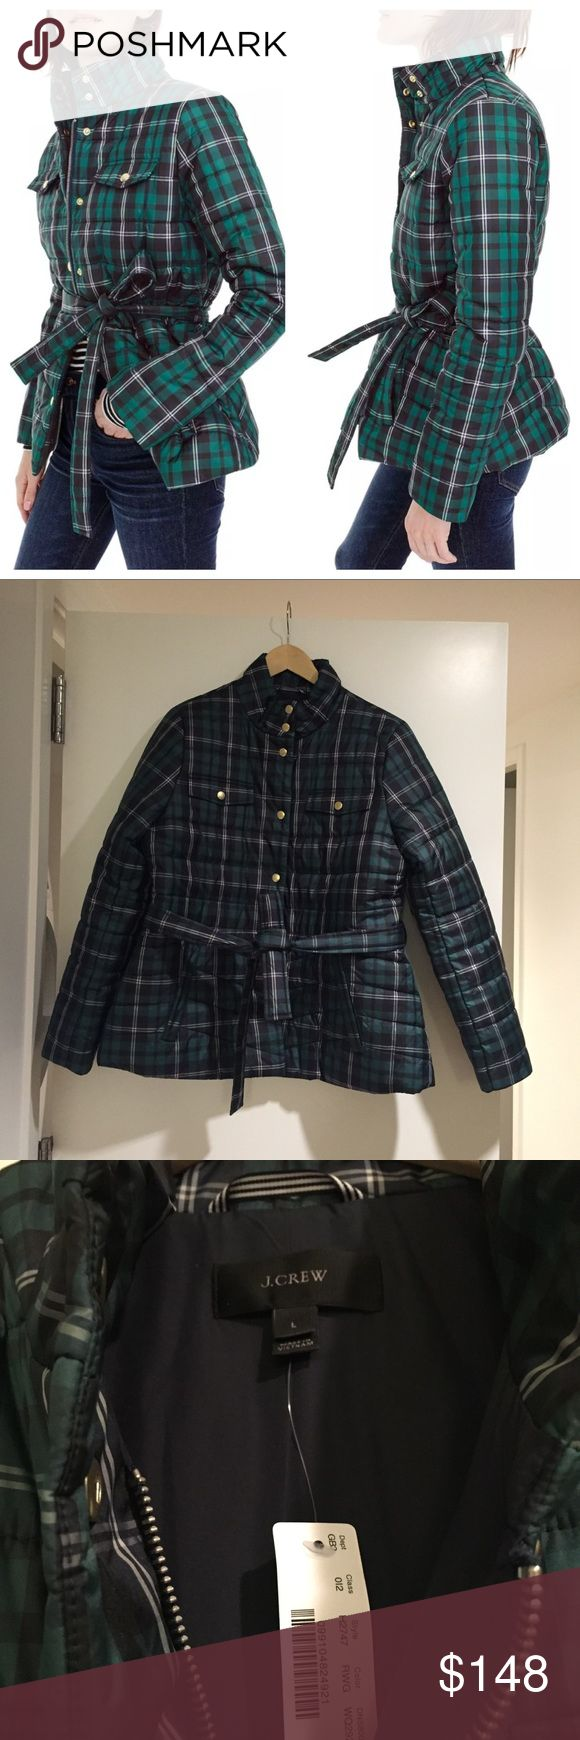 """J.Crew Plaid Belted Puffer Jacket A slim-fitting puffer that's super-warm, ultra-stylish and incredibly flattering.  From Fall/Winter 2017/2018 and sold out! Approx 27"""" length. Front zip closure with snap placket; tie belt at waist. Stand collar. Lined. 100% polyester. Machine wash, tumble dry. J. Crew Jackets & Coats"""